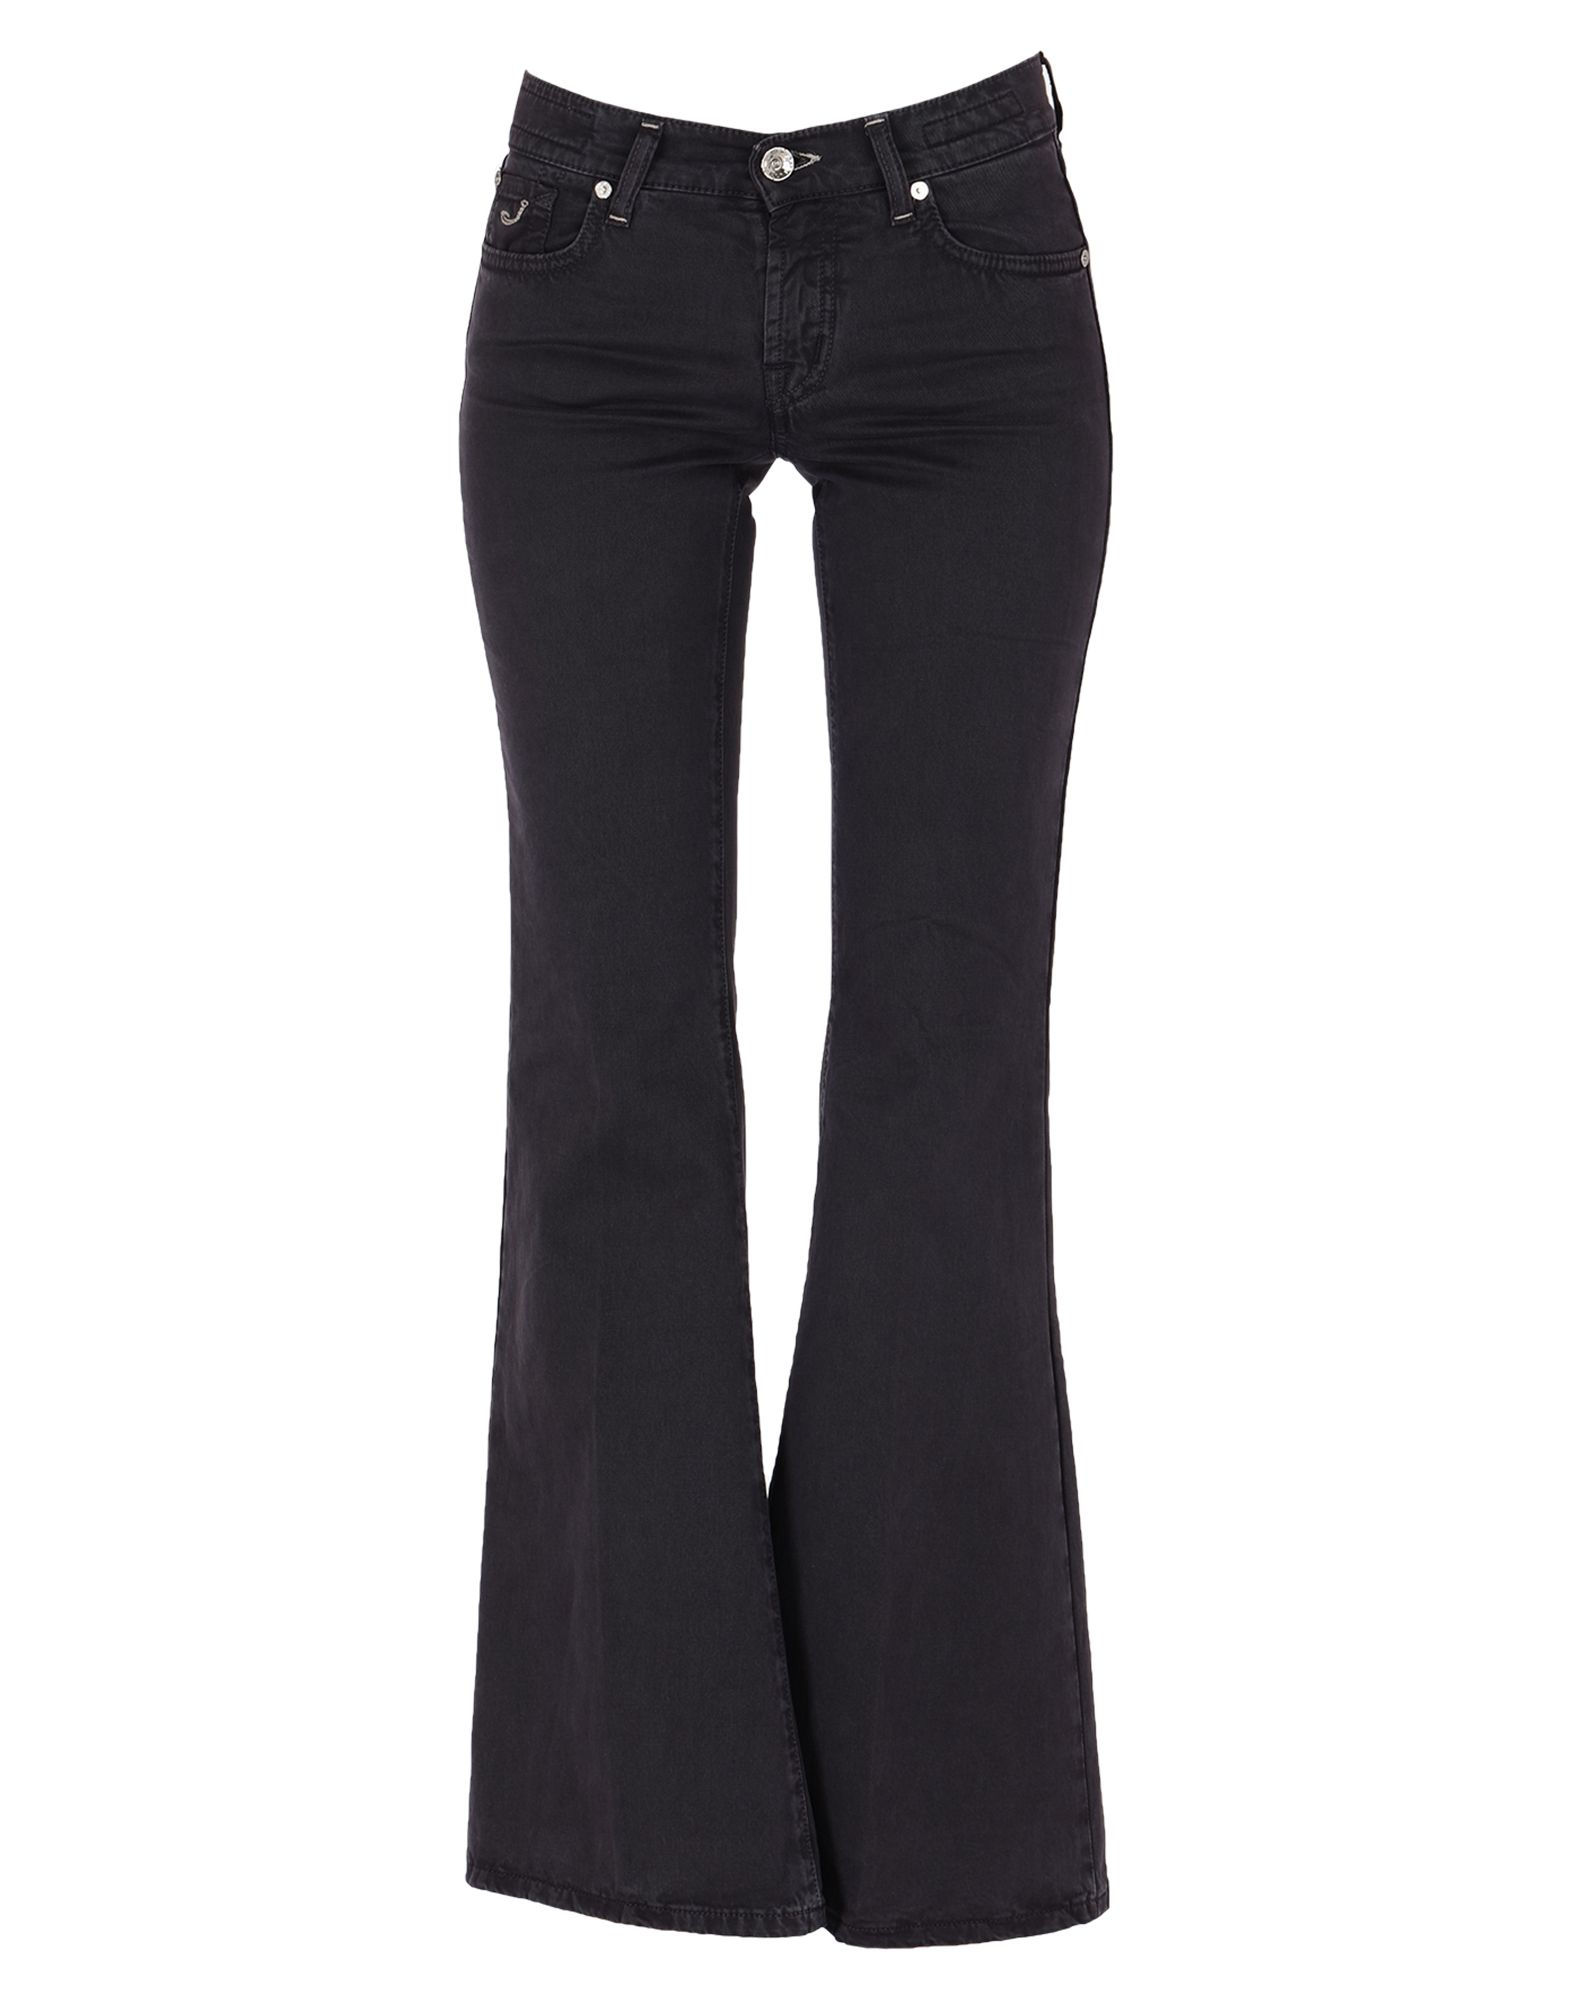 JACOB COHЁN Denim pants - Item 42759636